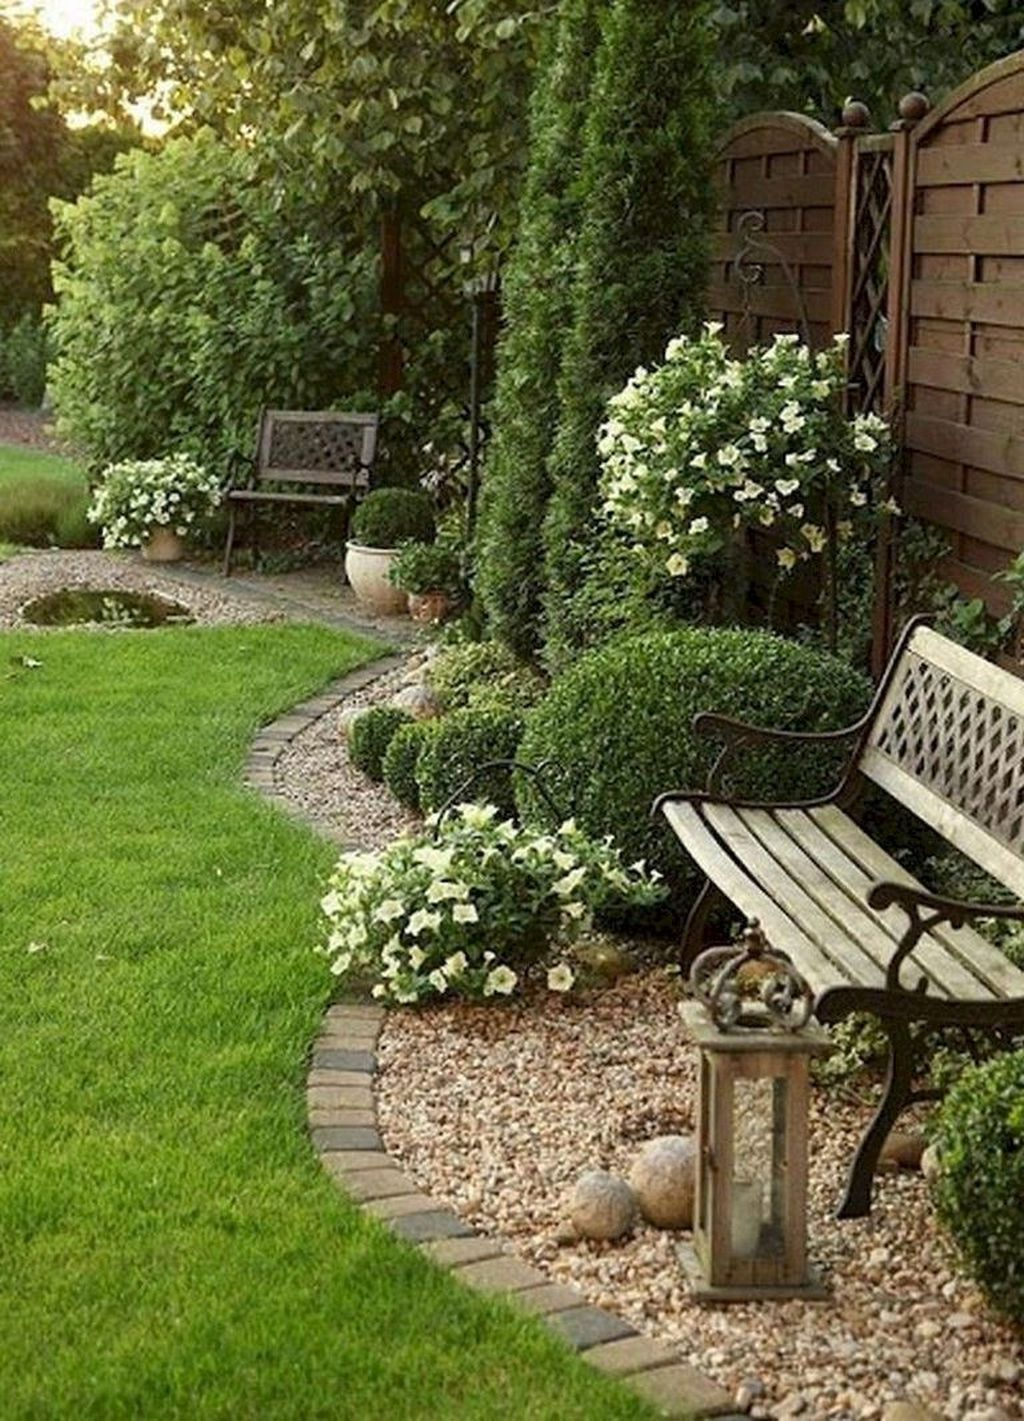 20 Impressive Small Front Yard Landscaping Ideas To Try Front Yard Landscaping Design Backyard Landscaping Designs Backyard Landscaping